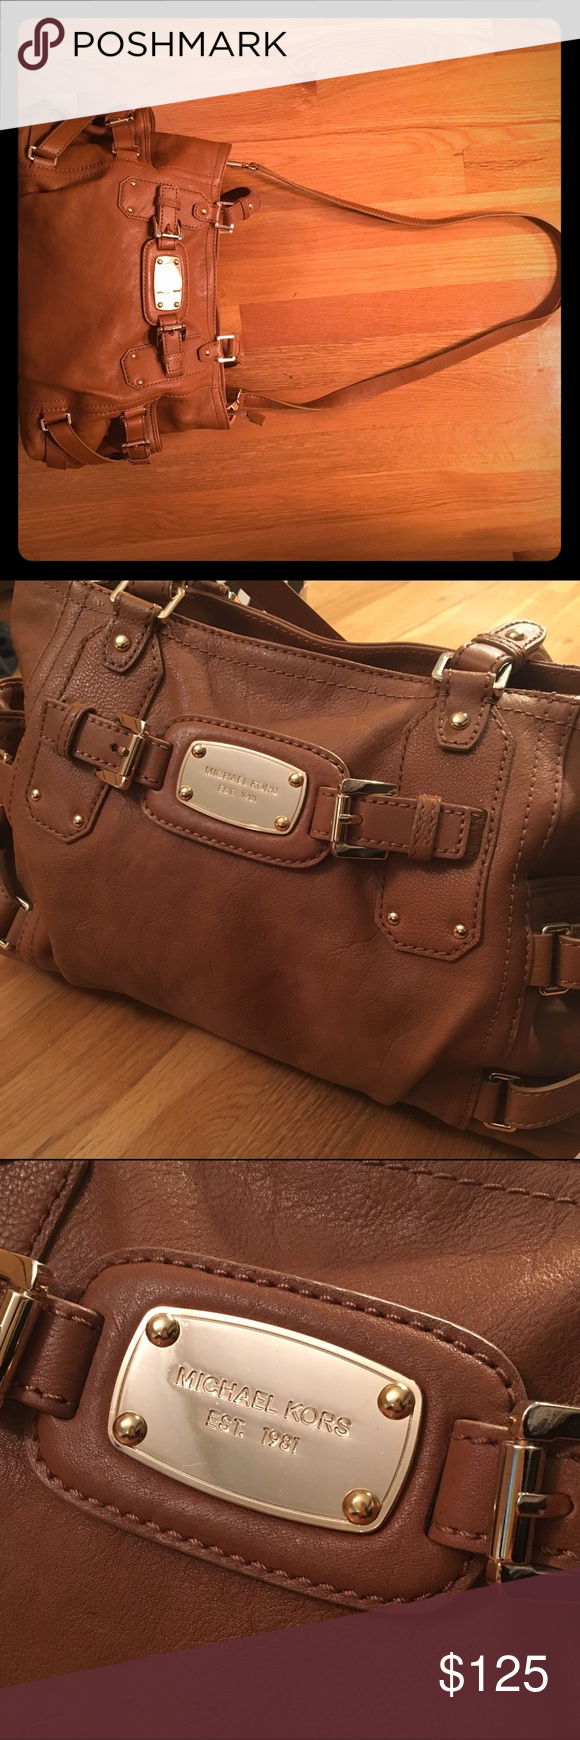 Michael Kors leather satchel Keep your look sleek and sophisticated from the office to afterhours with this polished satchel. Perfect shade of brown leather with a strap so you can wear it as a crossbody purse. This leather satchel is the perfect balance of modern and classic appeal! Almost new. Excellent shape. Used it only couple times! Michael Kors Bags Satchels